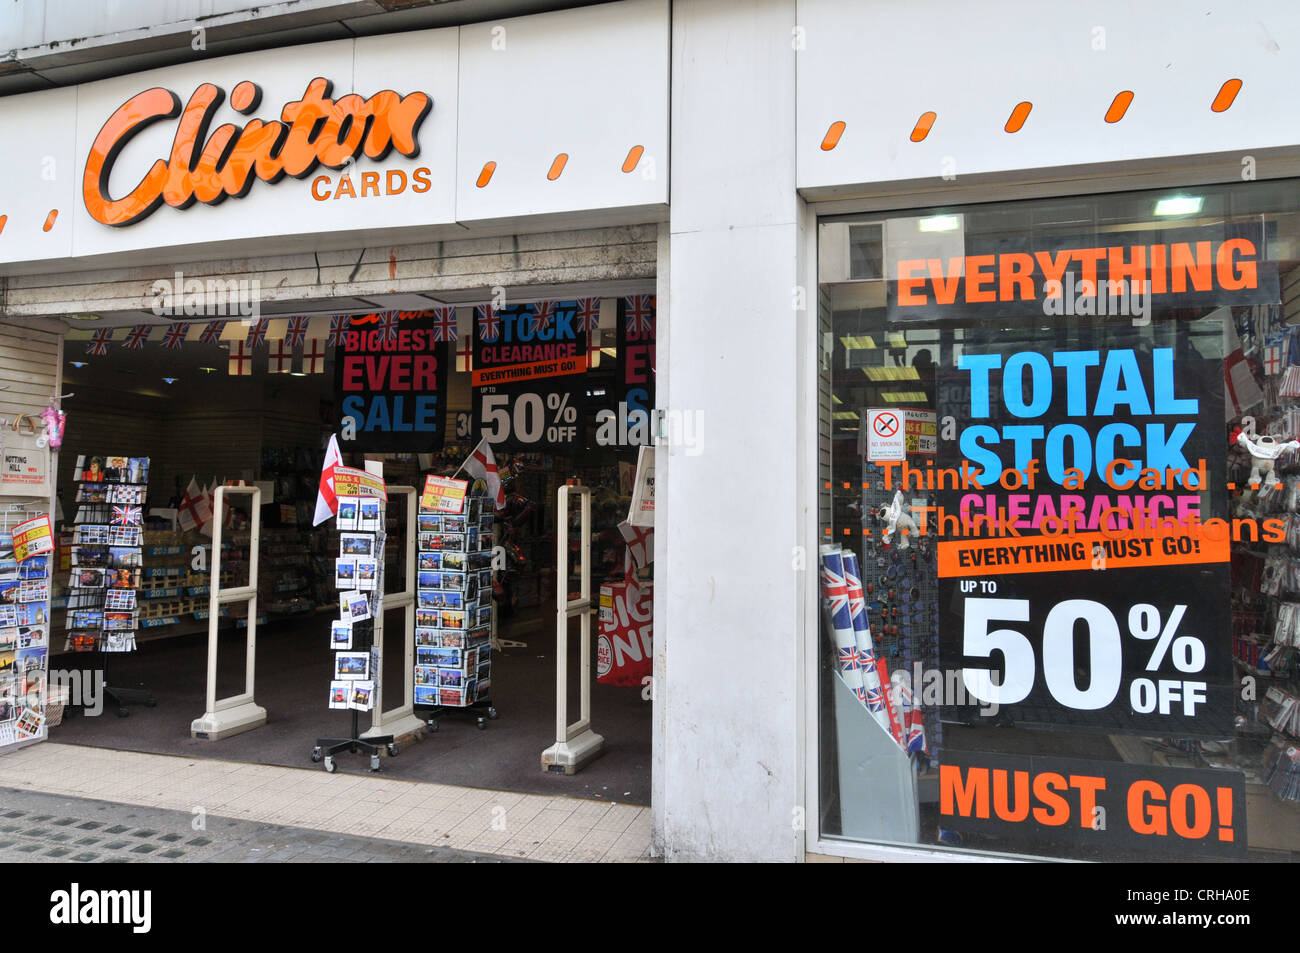 Clinton cards shop with everything must go stock clearance 50 off clinton cards shop with everything must go stock clearance 50 off sale signs clinton cards been bought by american greetings m4hsunfo